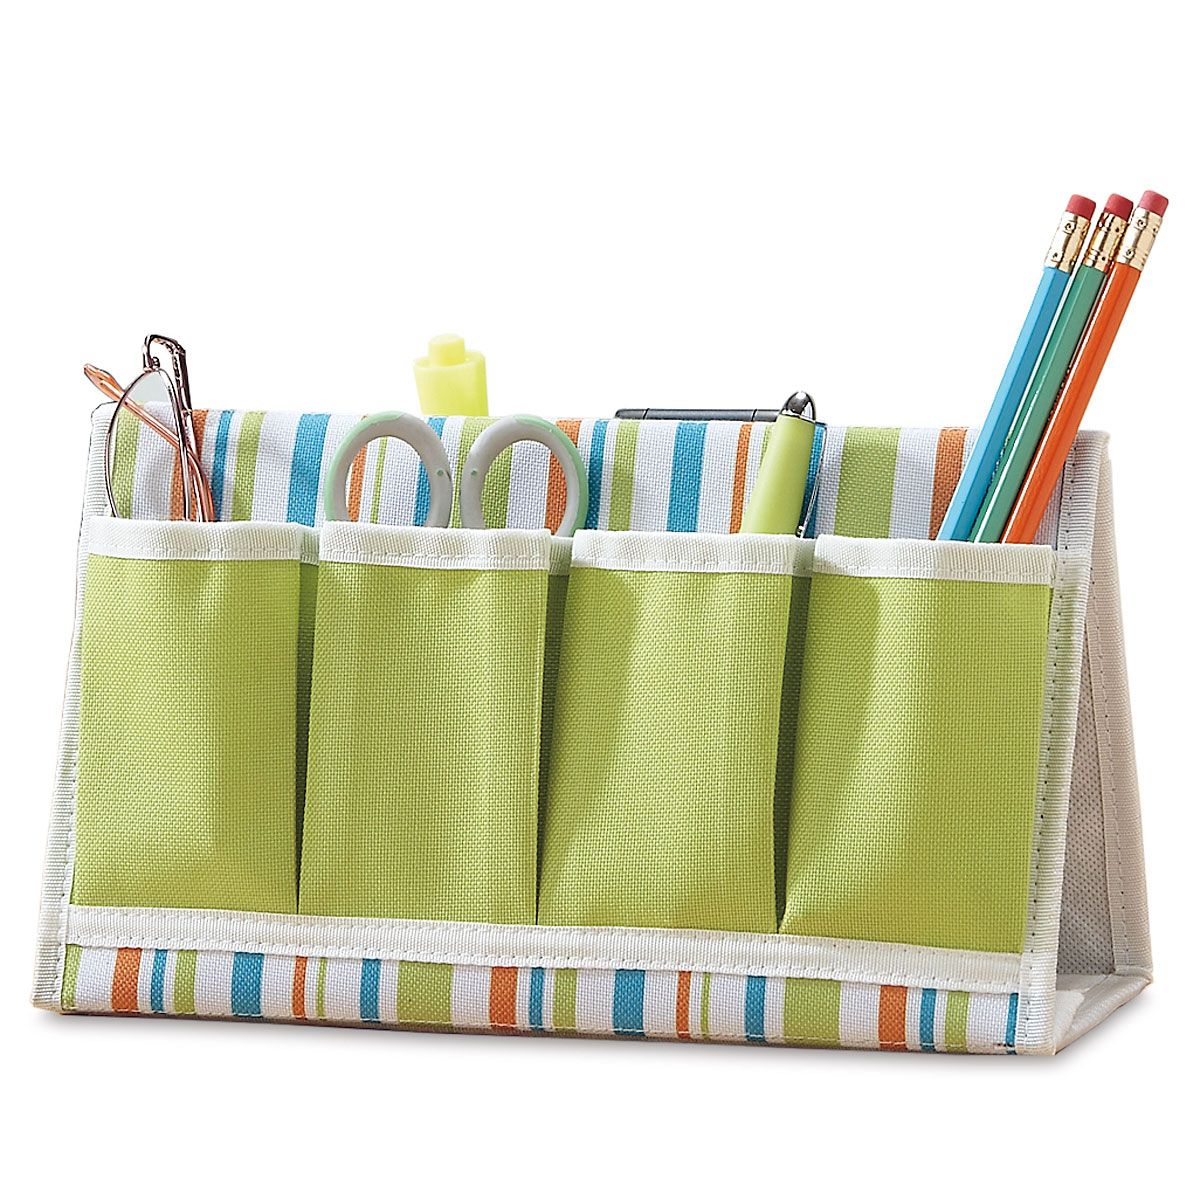 Canvas Desk Organizer